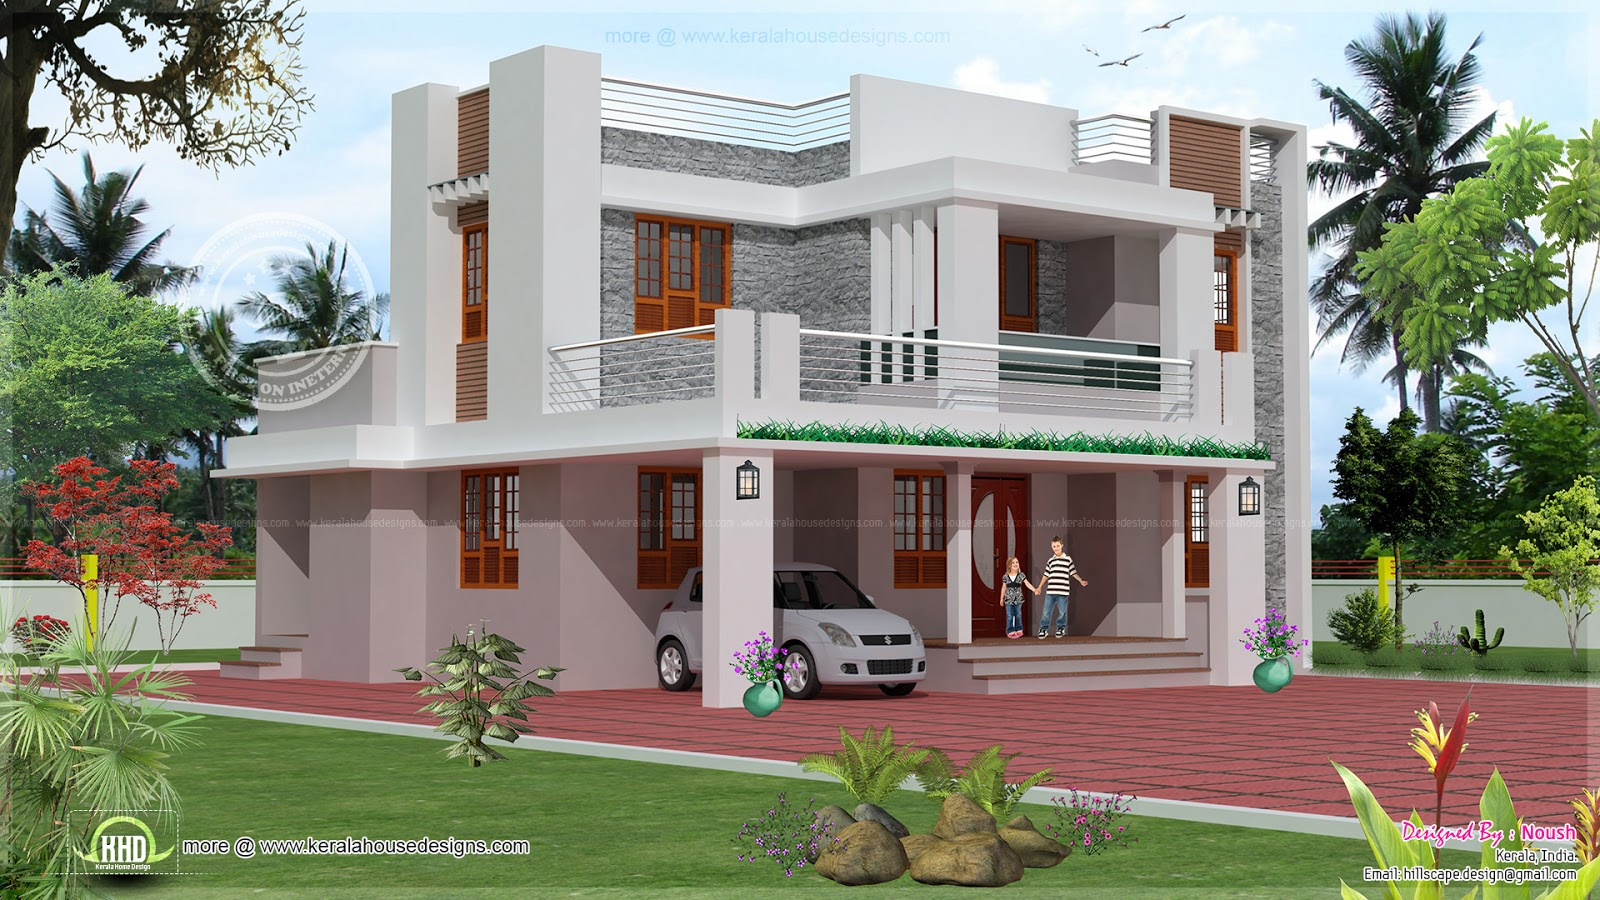 4 bedroom 2 story house exterior design house design plans 2 story home designs